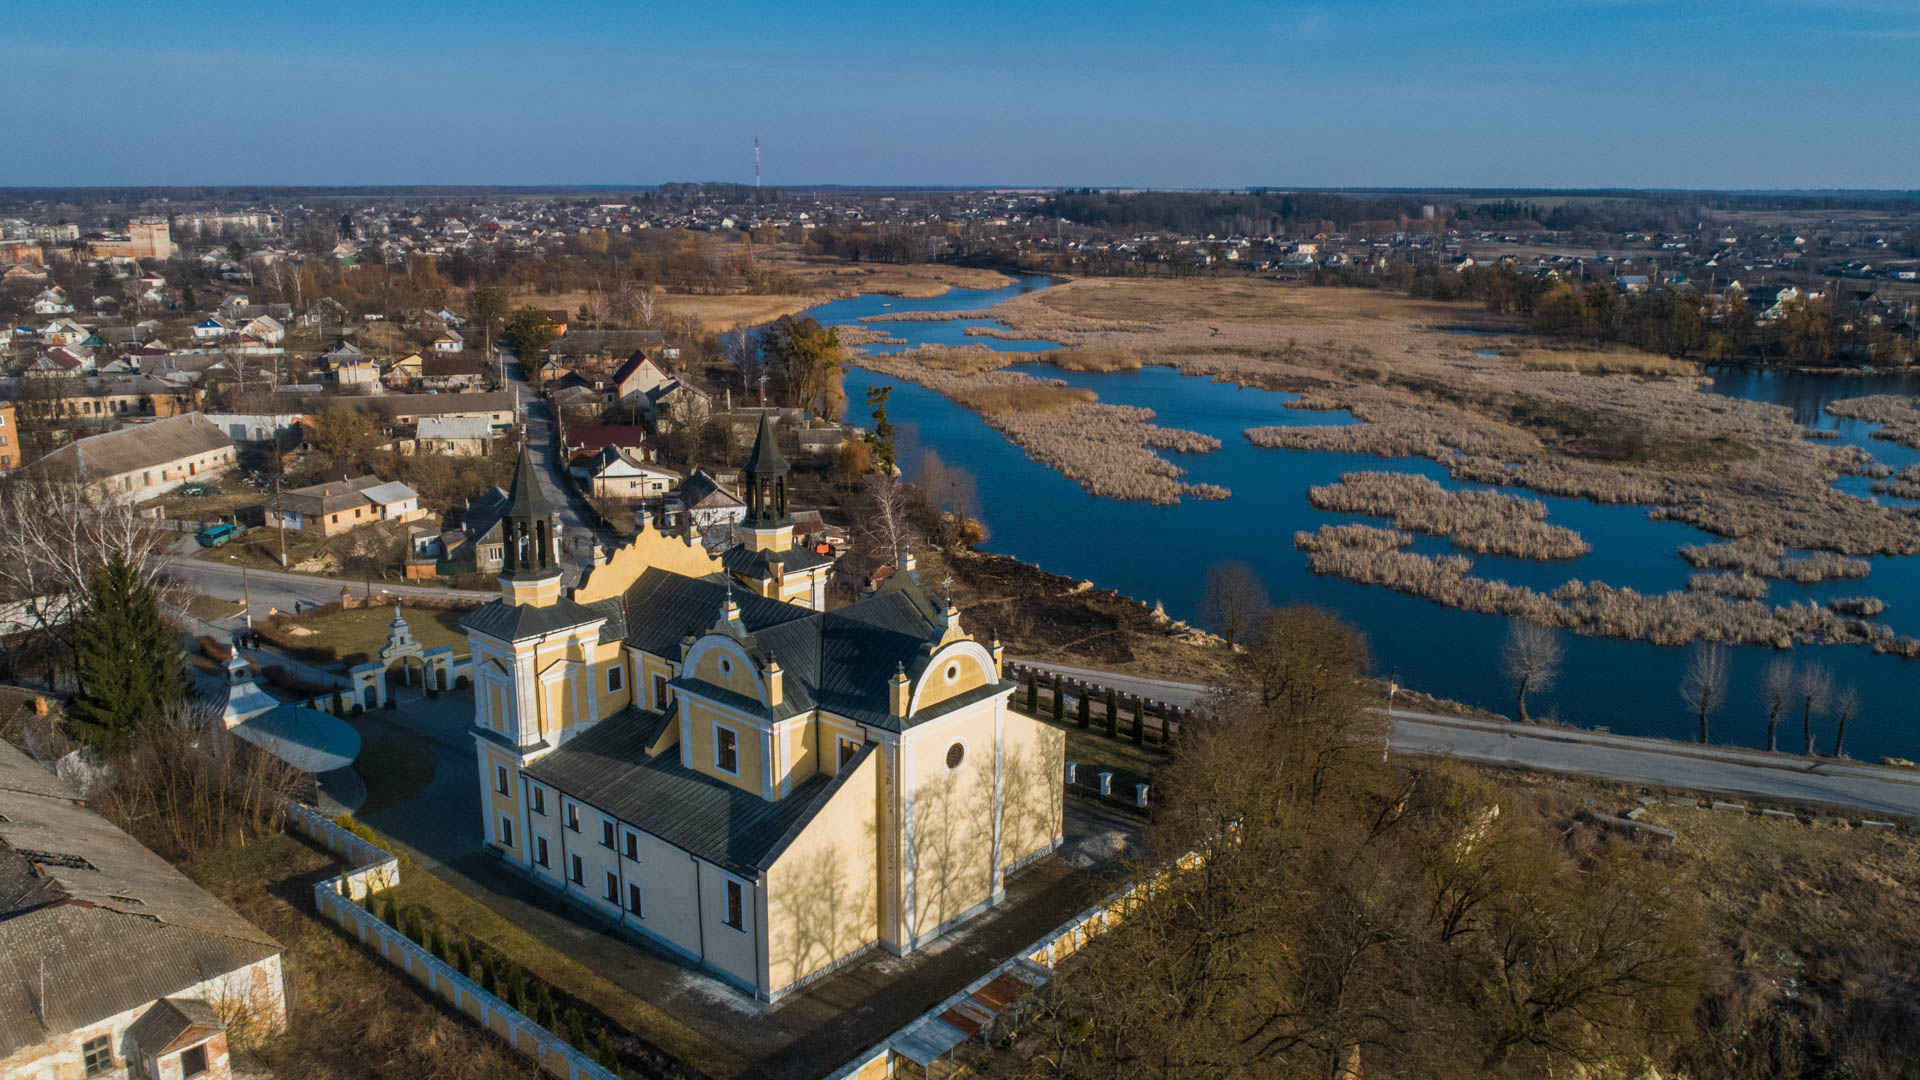 Polonska Hromada: new strategy and architecture